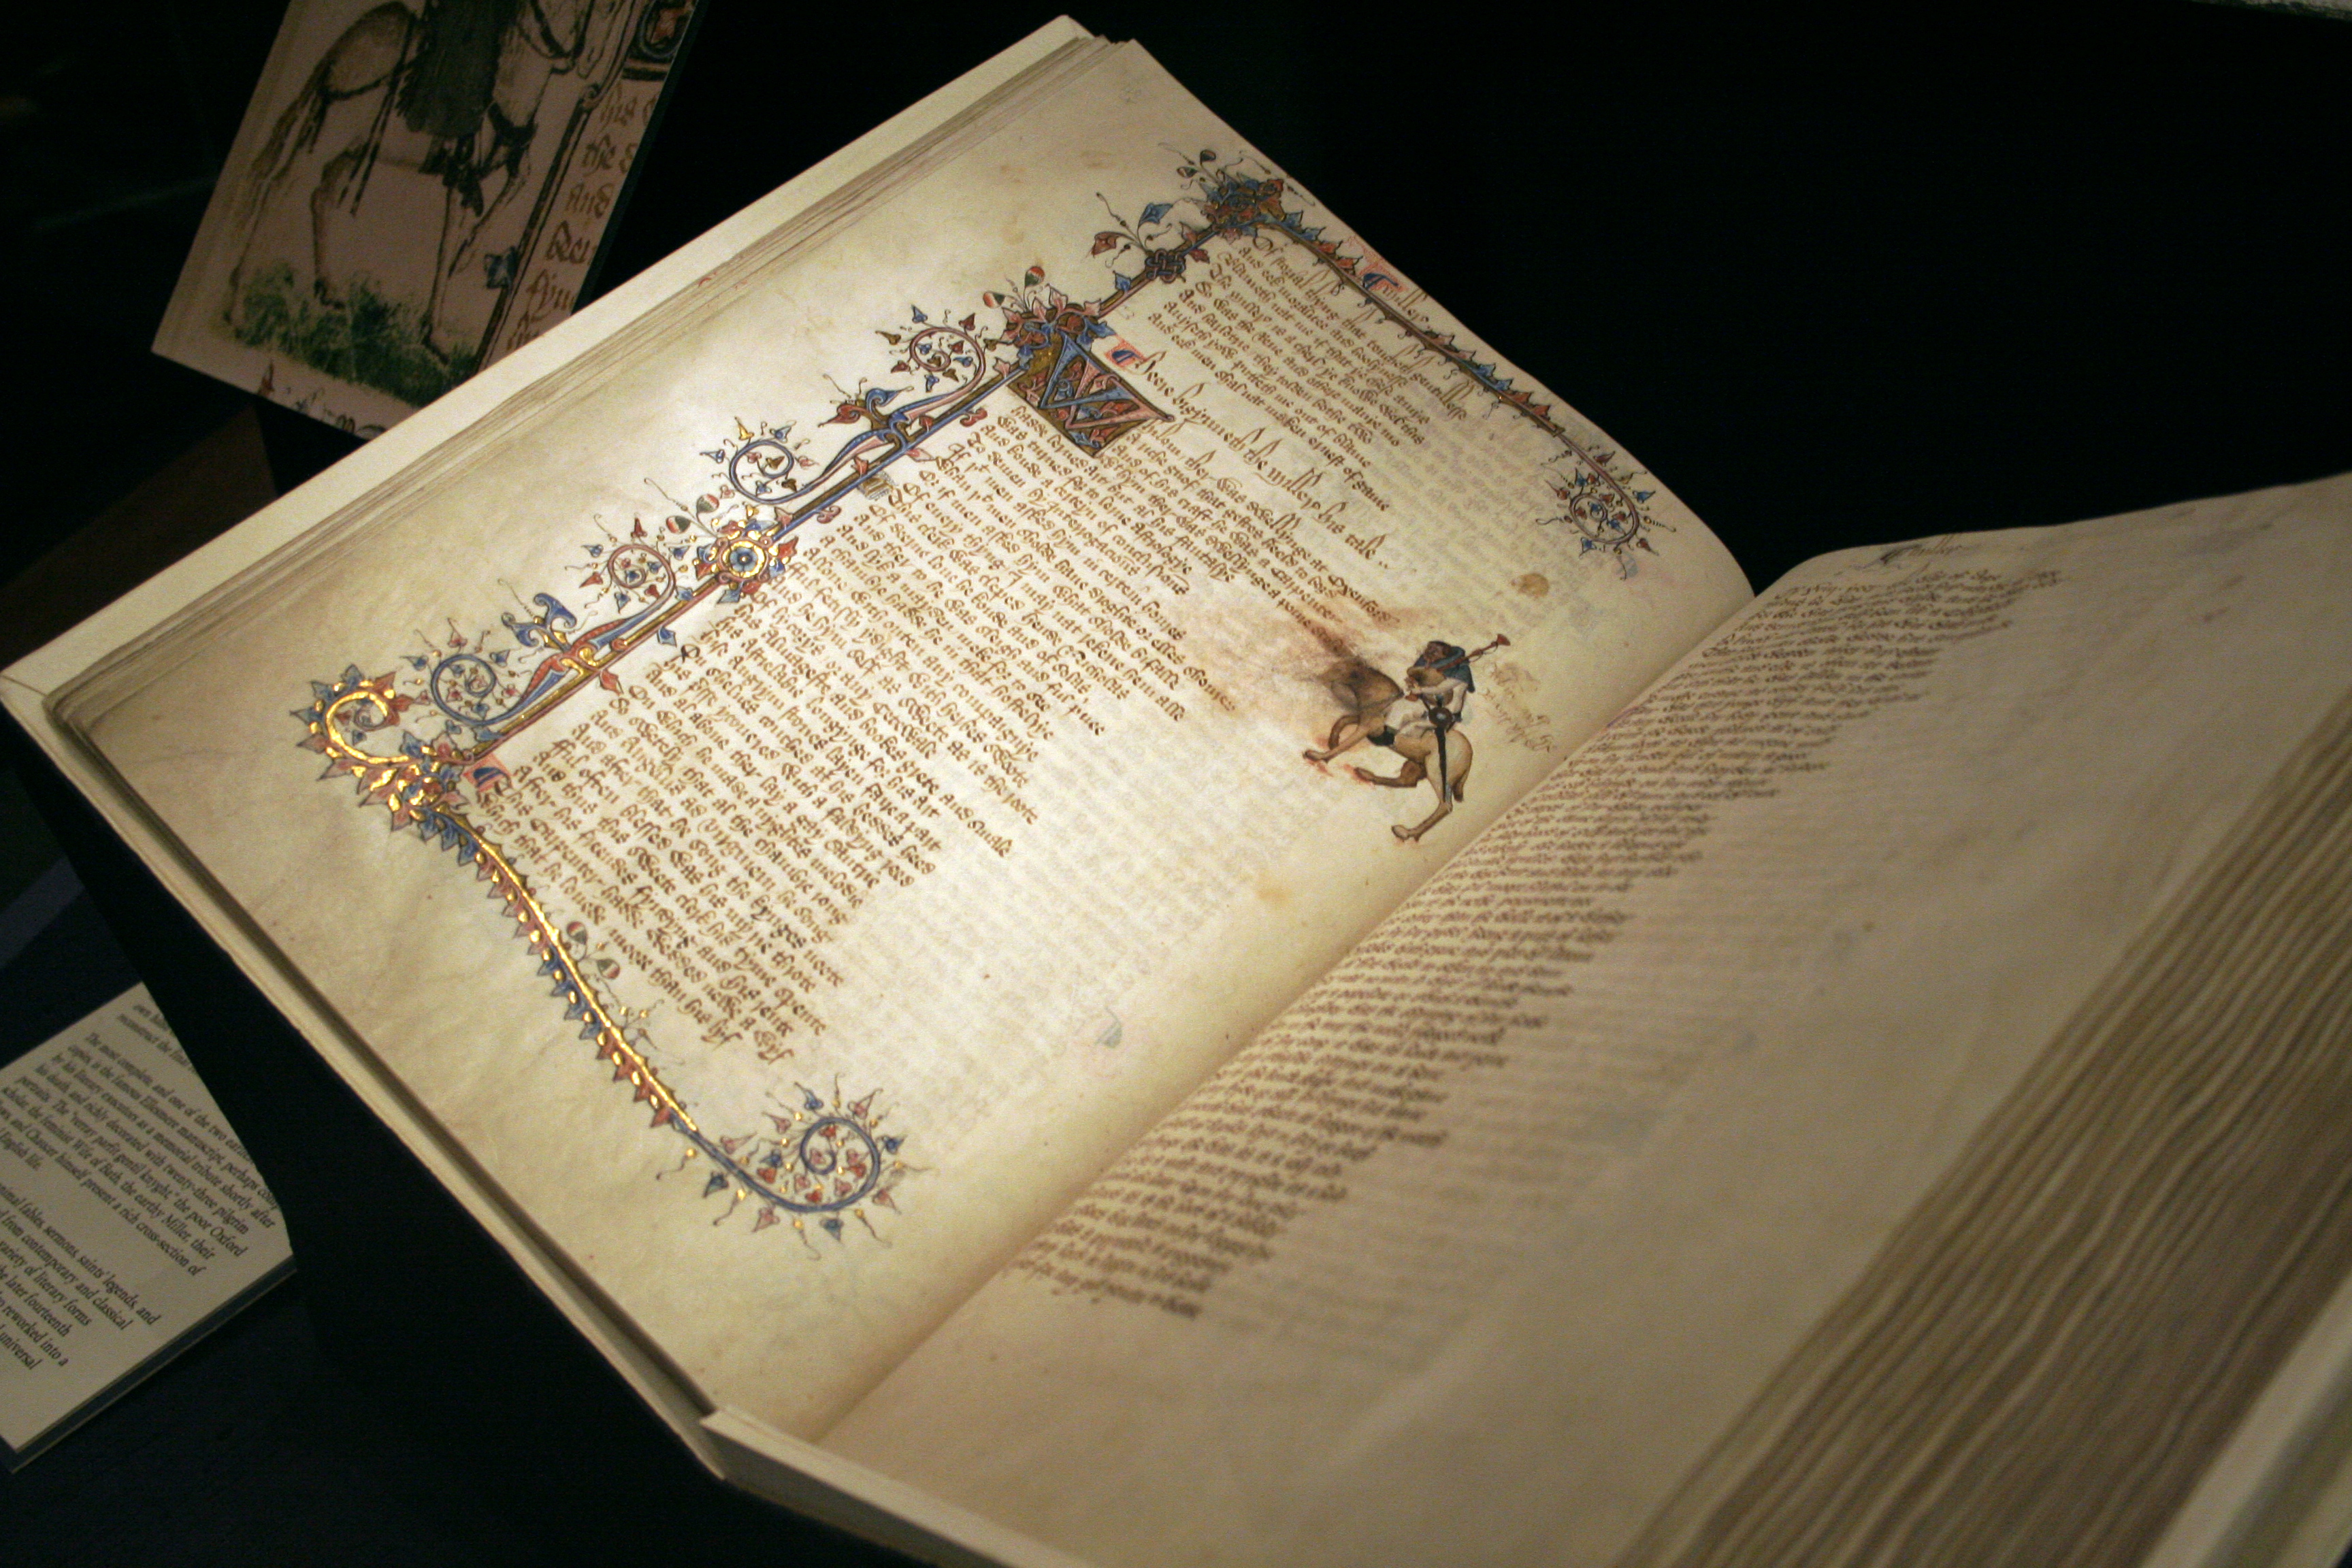 Image of open book page displaying the Canterbury Tales